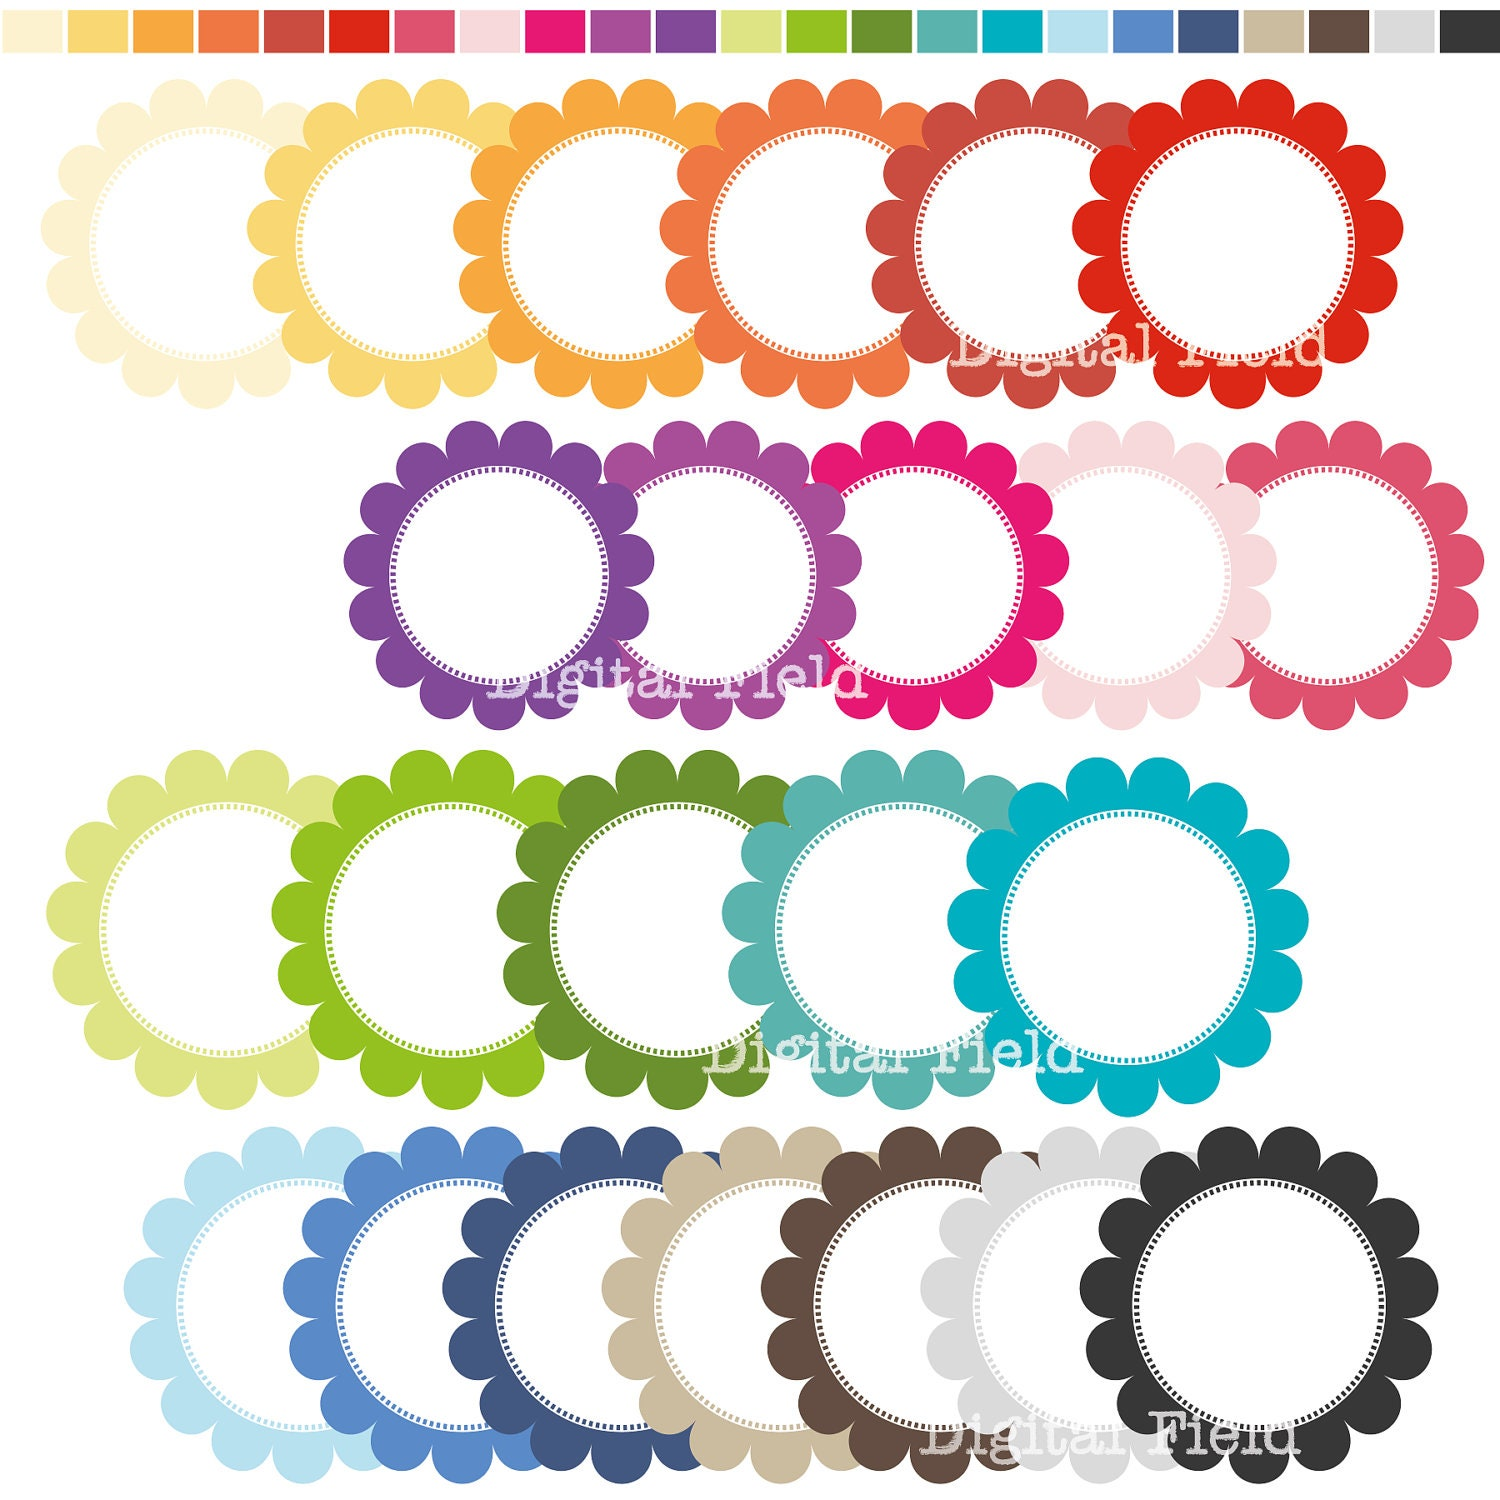 Free Scalloped Circle Clip Art - Awesome Graphic Library •